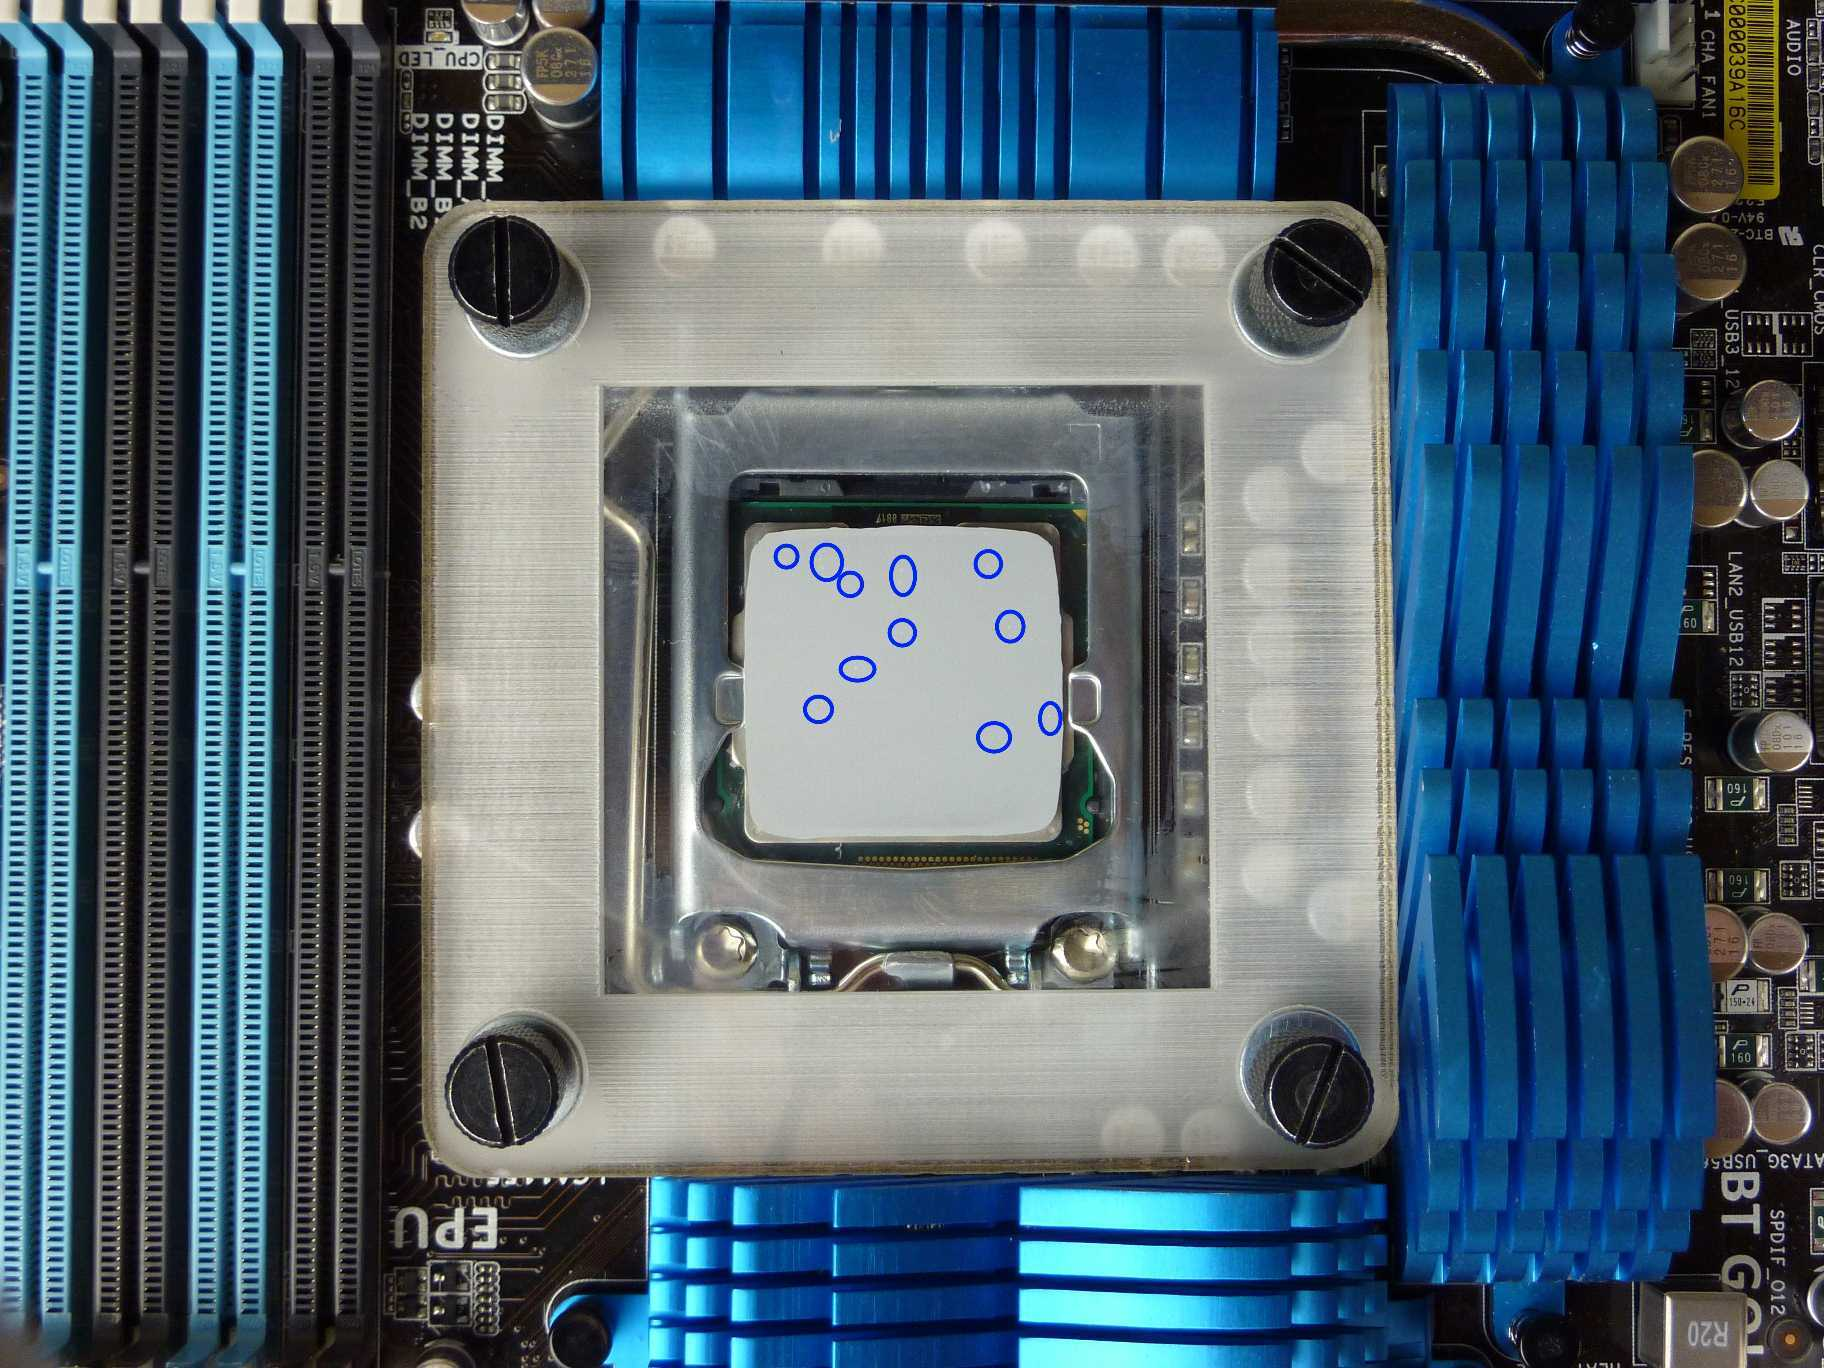 Thermal Paste Spread - Rough Spread